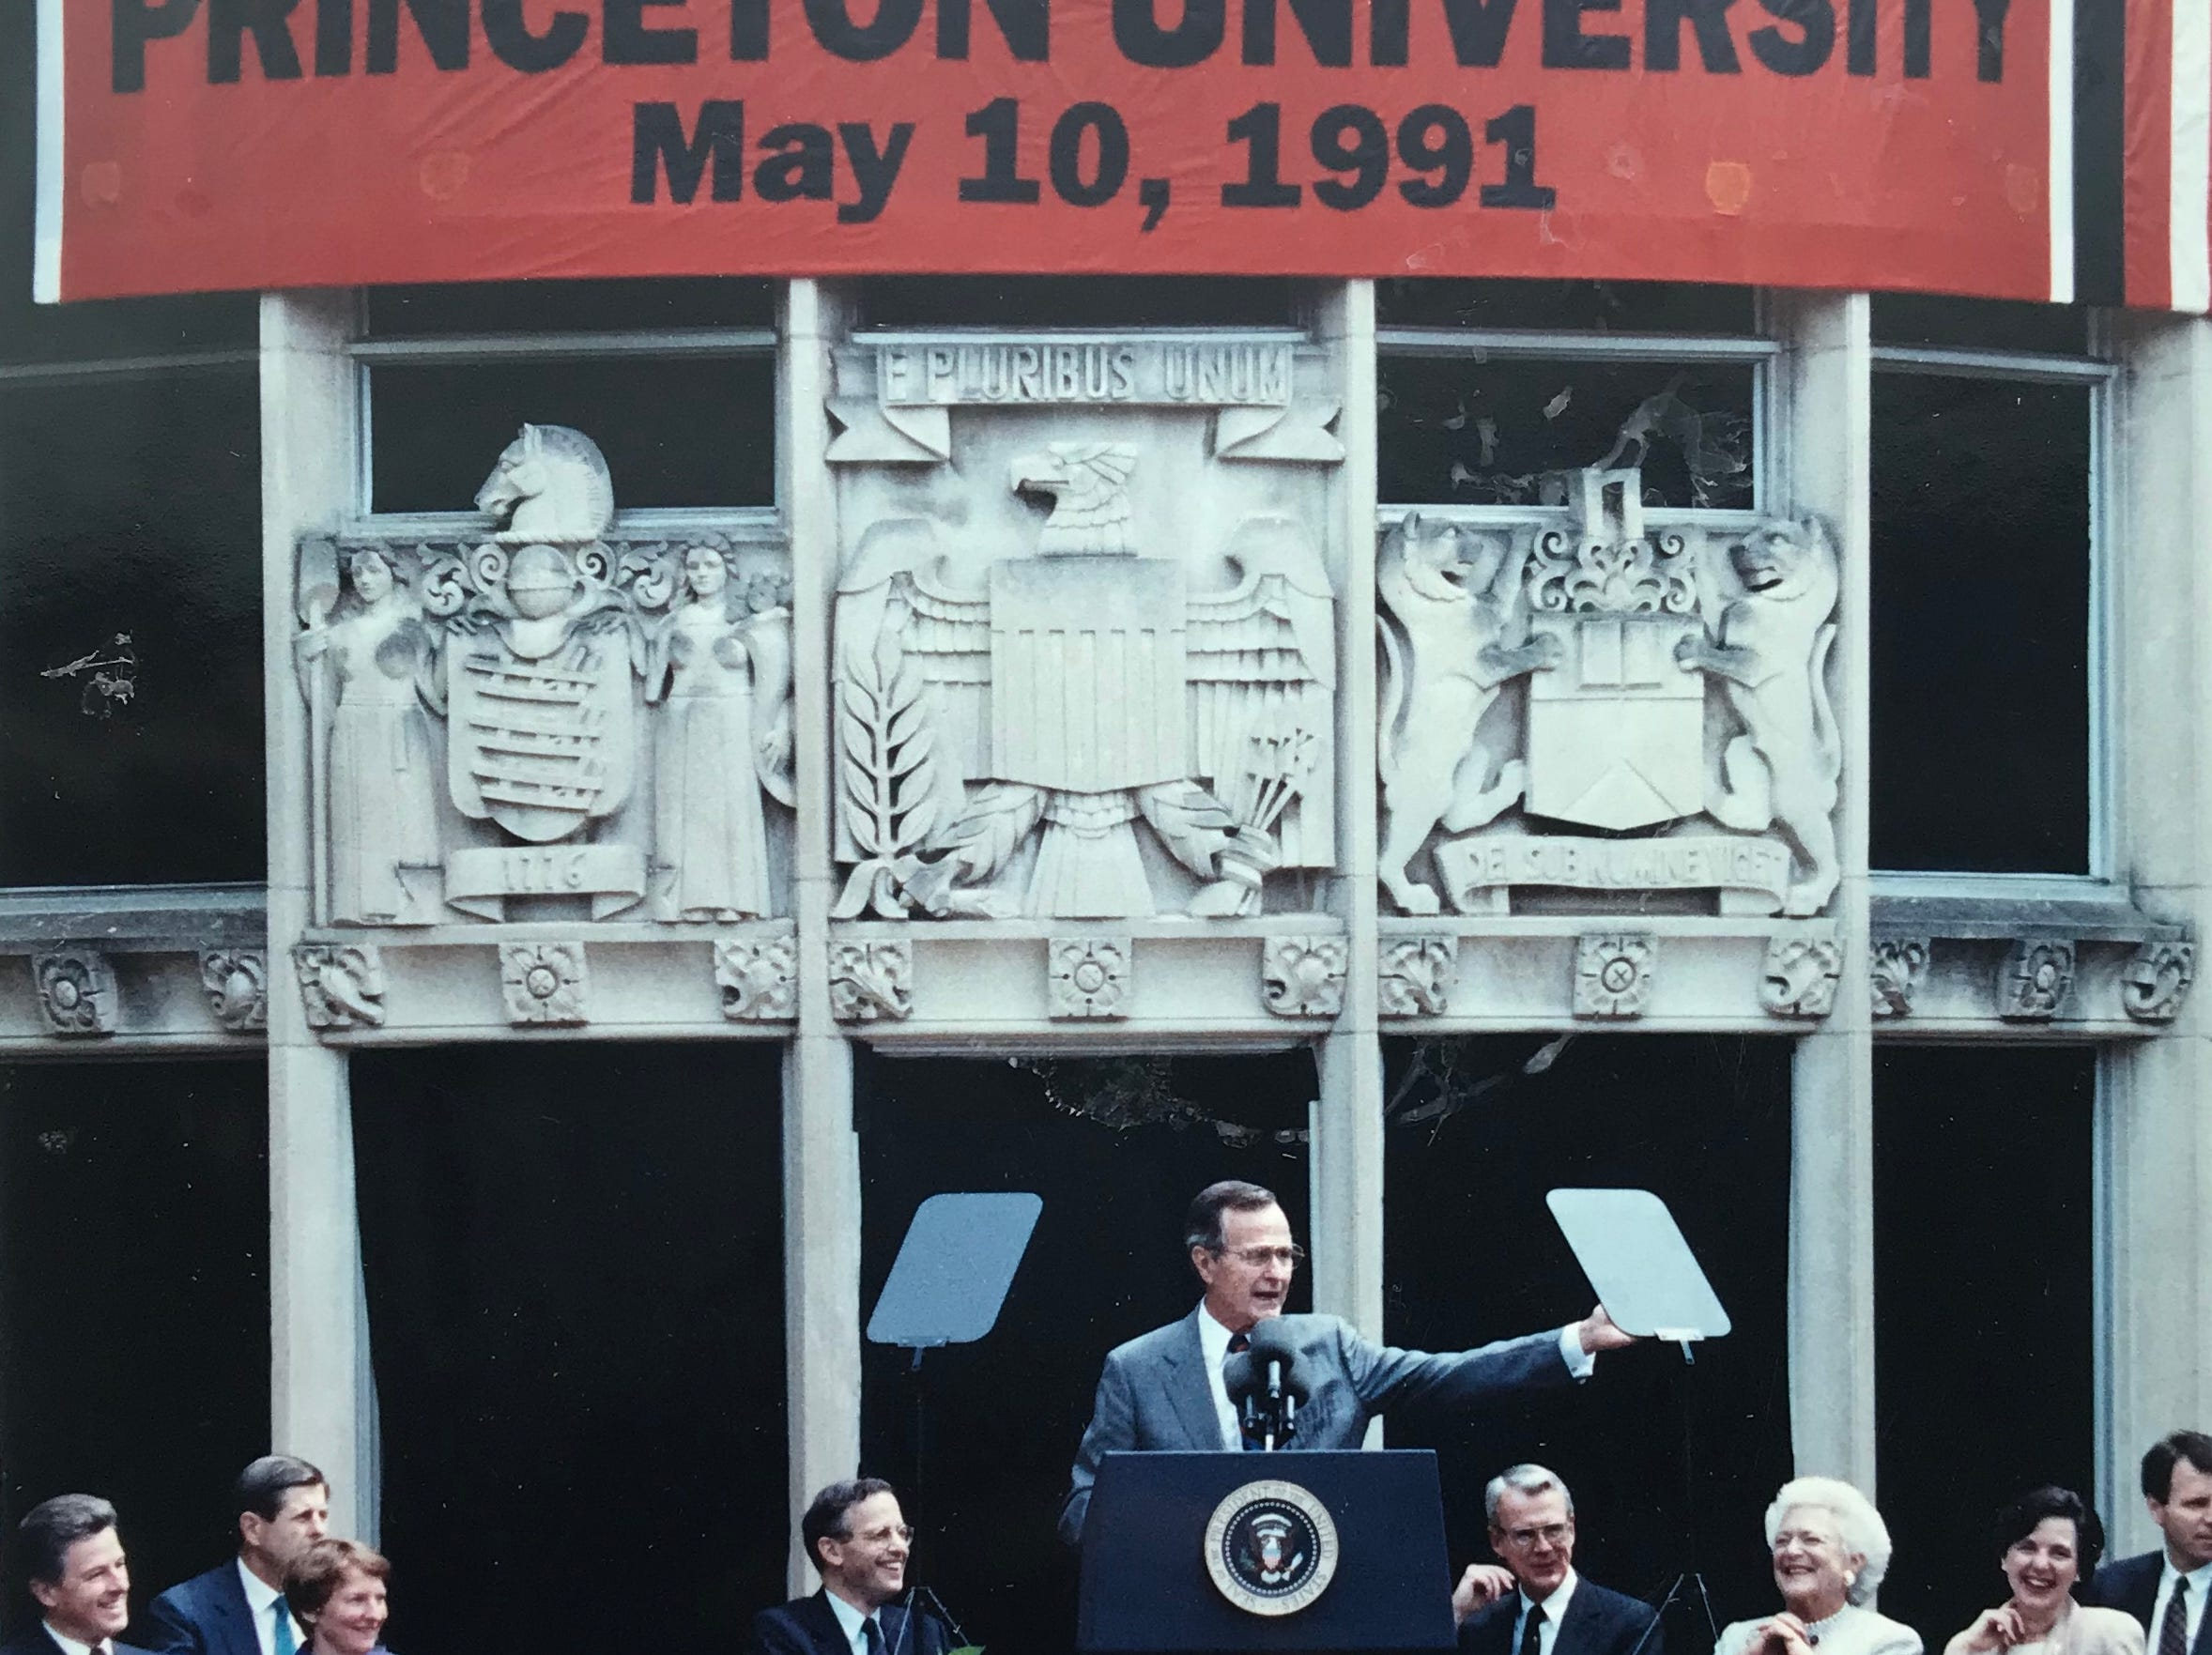 President George H.W. Bush at the podium during dedication ceremonies of Princeton University's Social Sciences Complex on May 10, 1991.